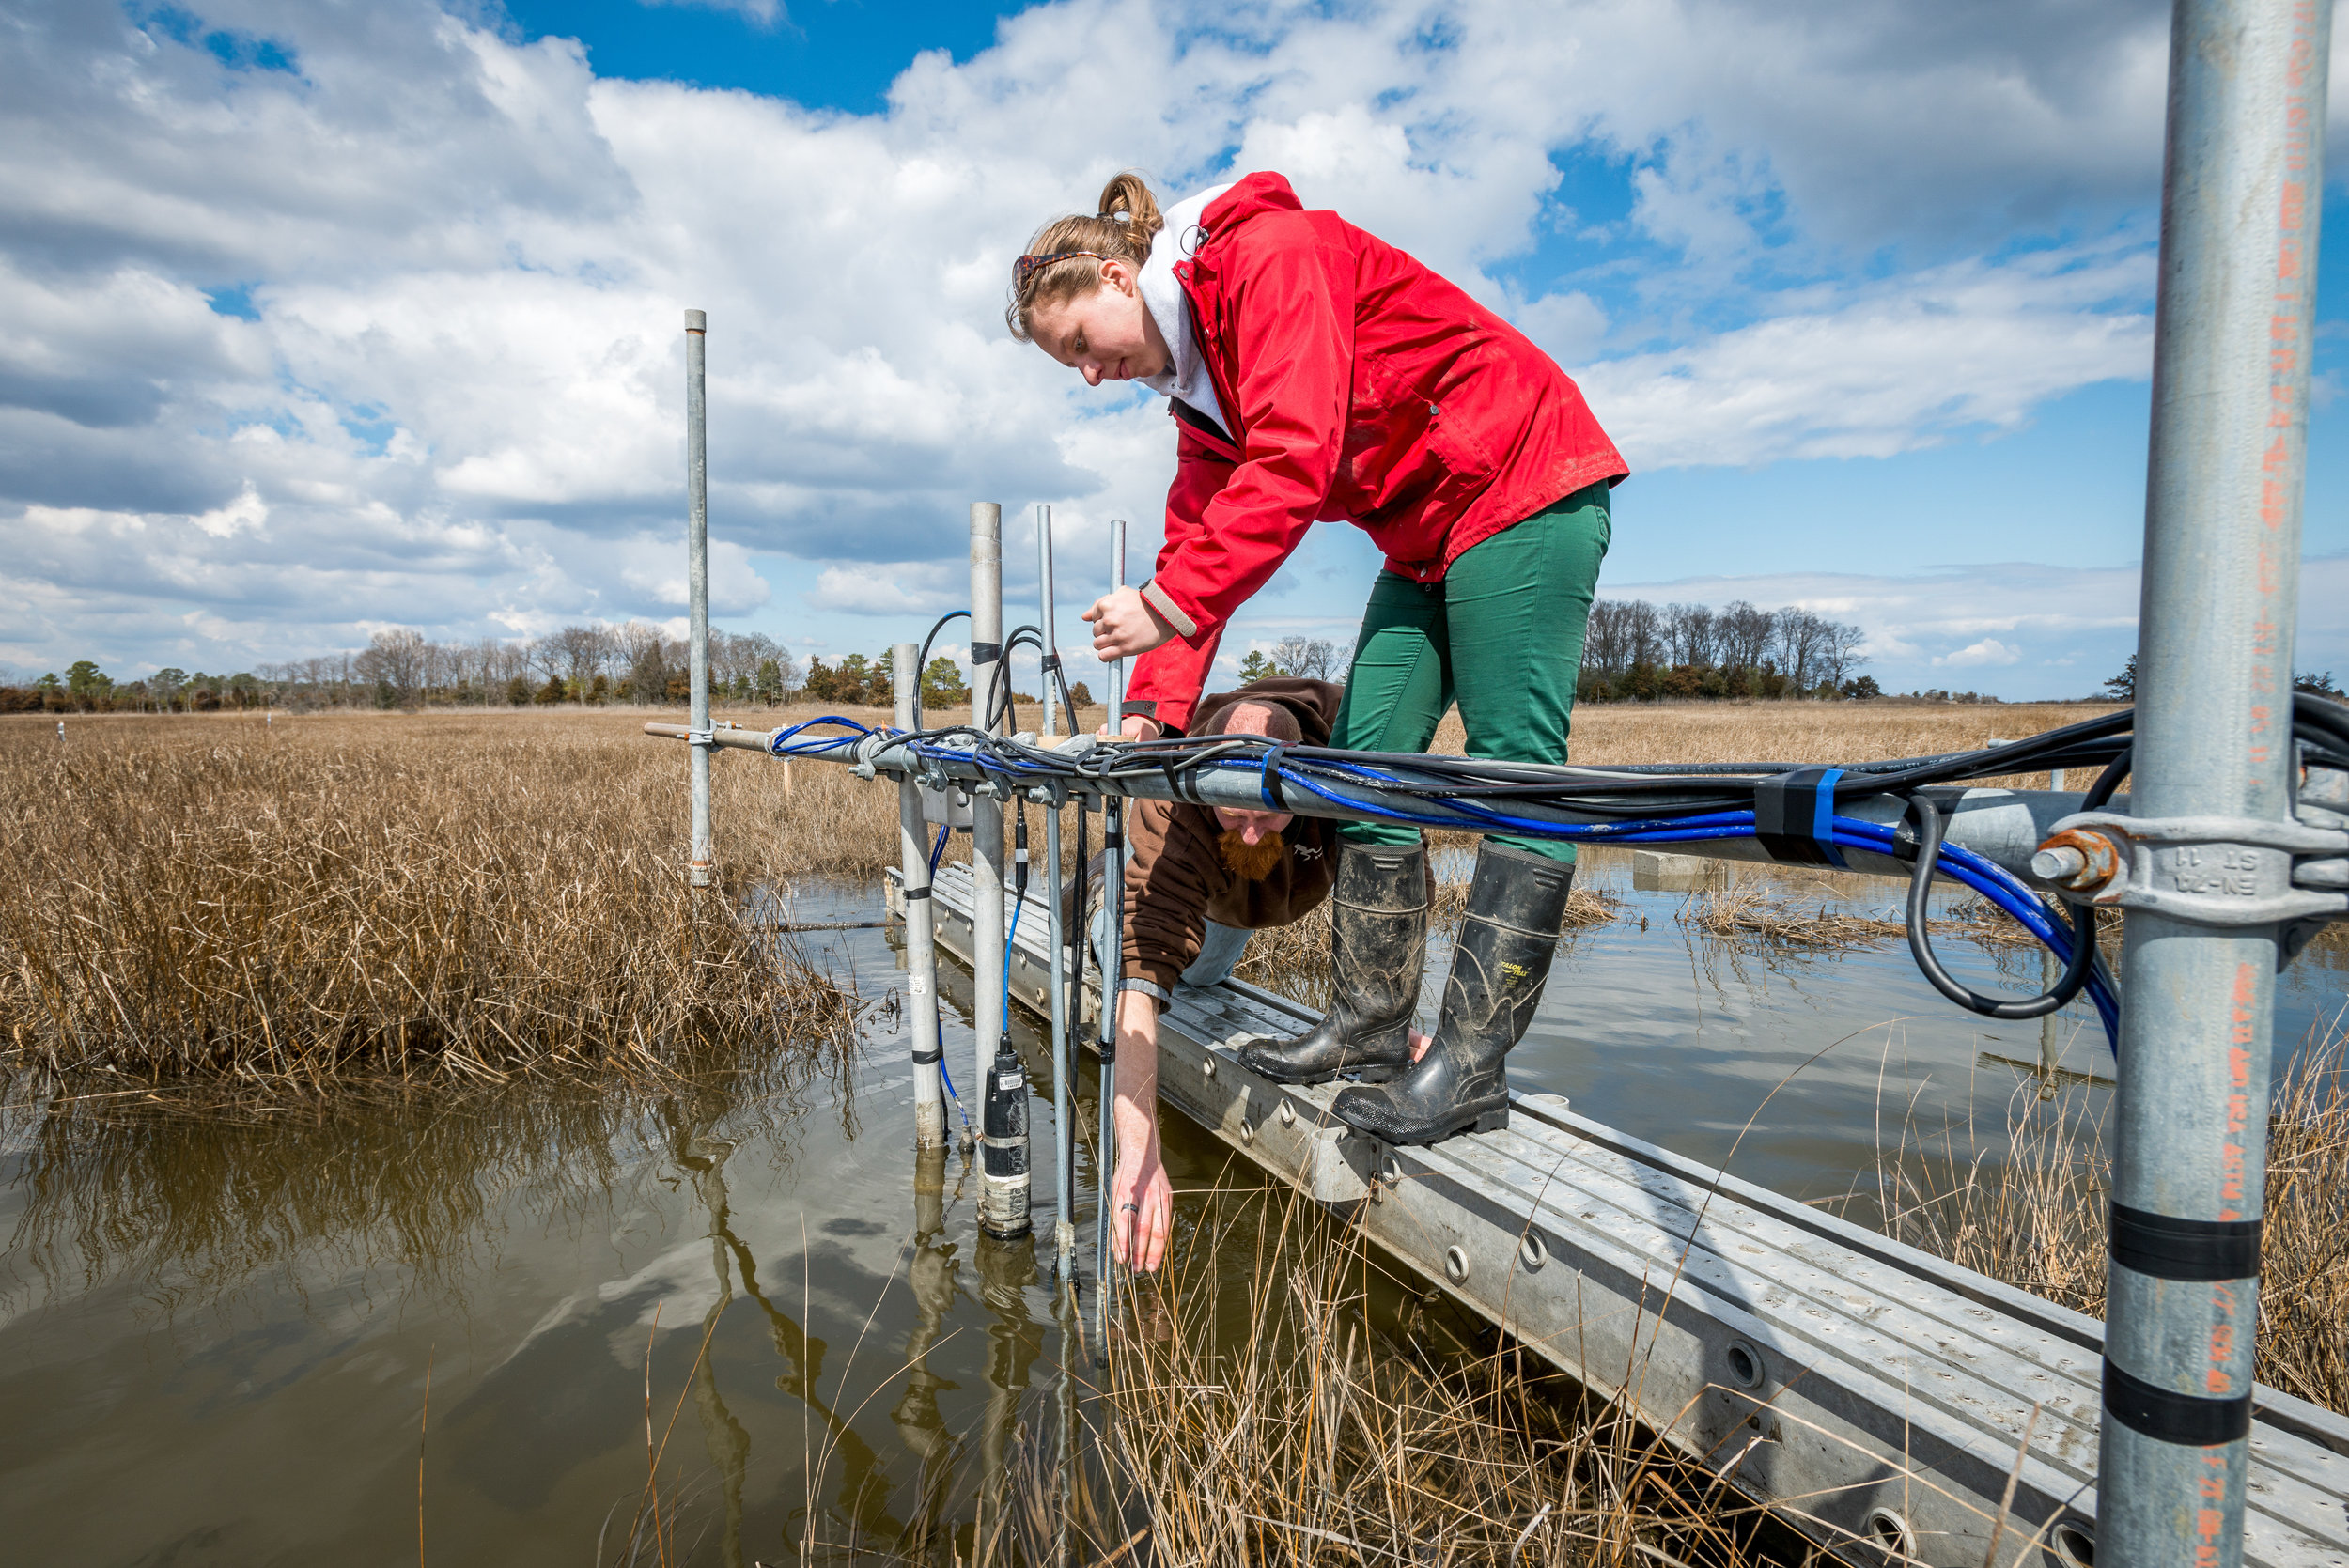 Delaware Sea Grant-Delaware National Estuarine Research Reserve Fellowship - The Delaware Sea Grant-DNERR Fellowship offers graduate students studying environmental science, engineering and social science an opportunity to conduct research within the St. Jones and Blackbird Creek Reserves.The application period is closed.